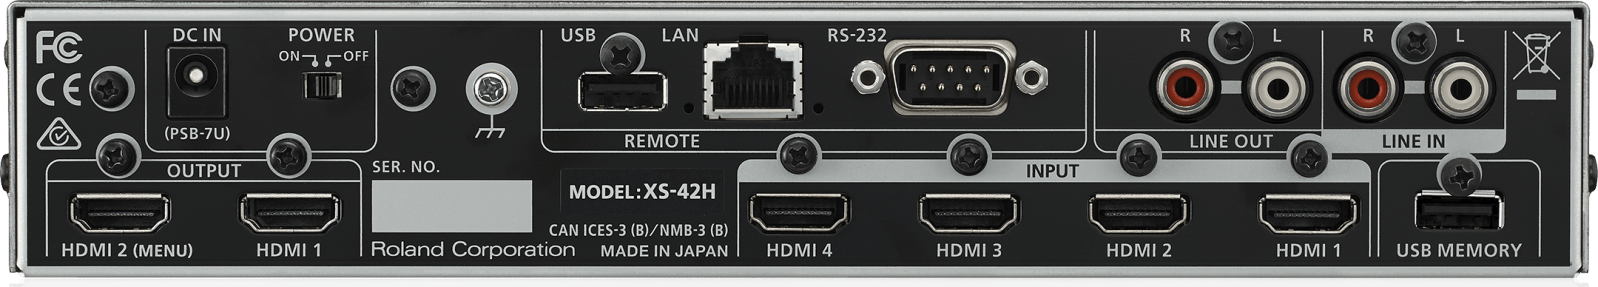 Roland XS-42H Connections